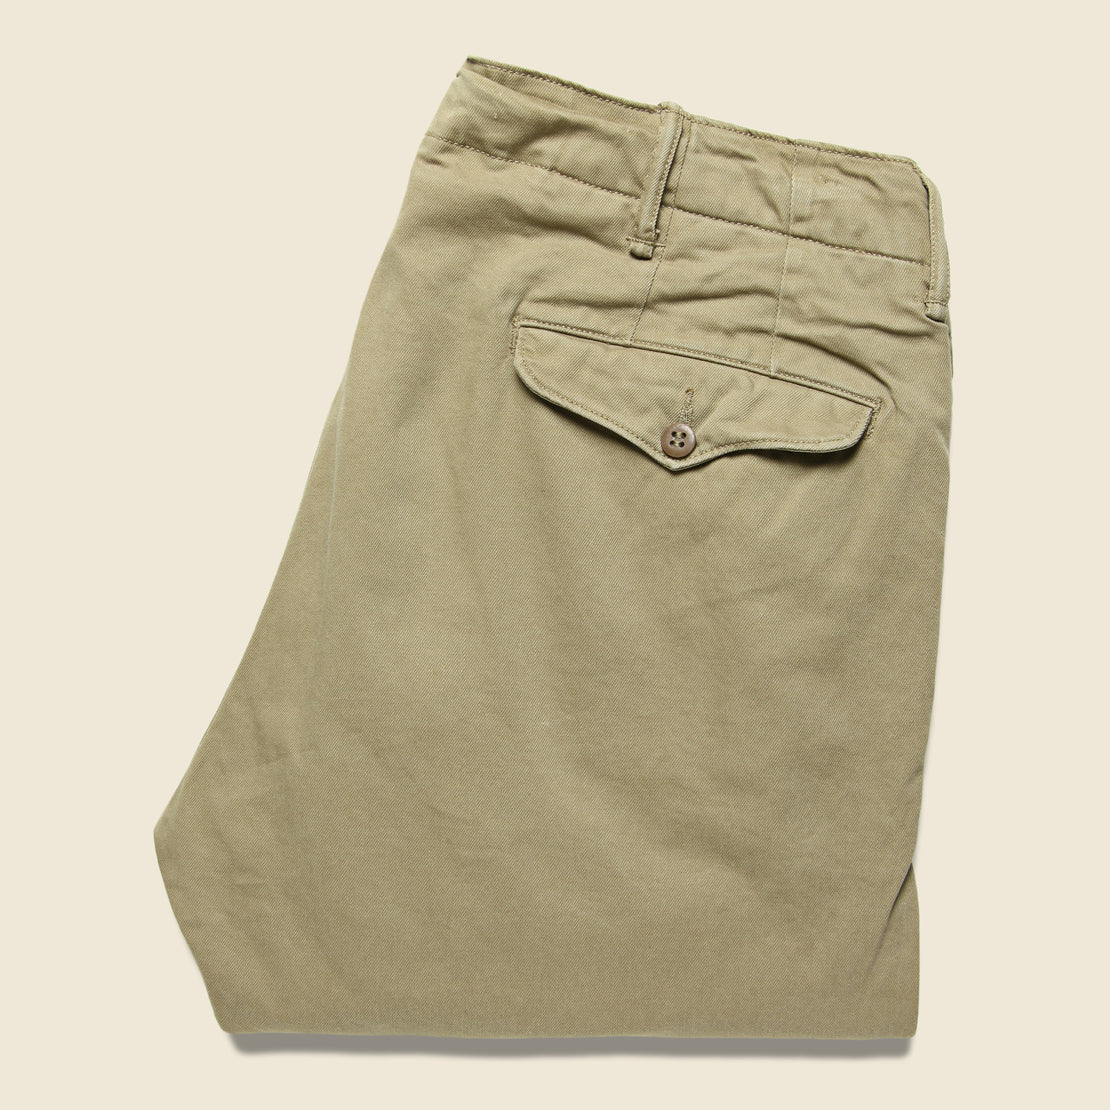 Officer Chino - Khaki - RRL - STAG Provisions - Pants - Twill